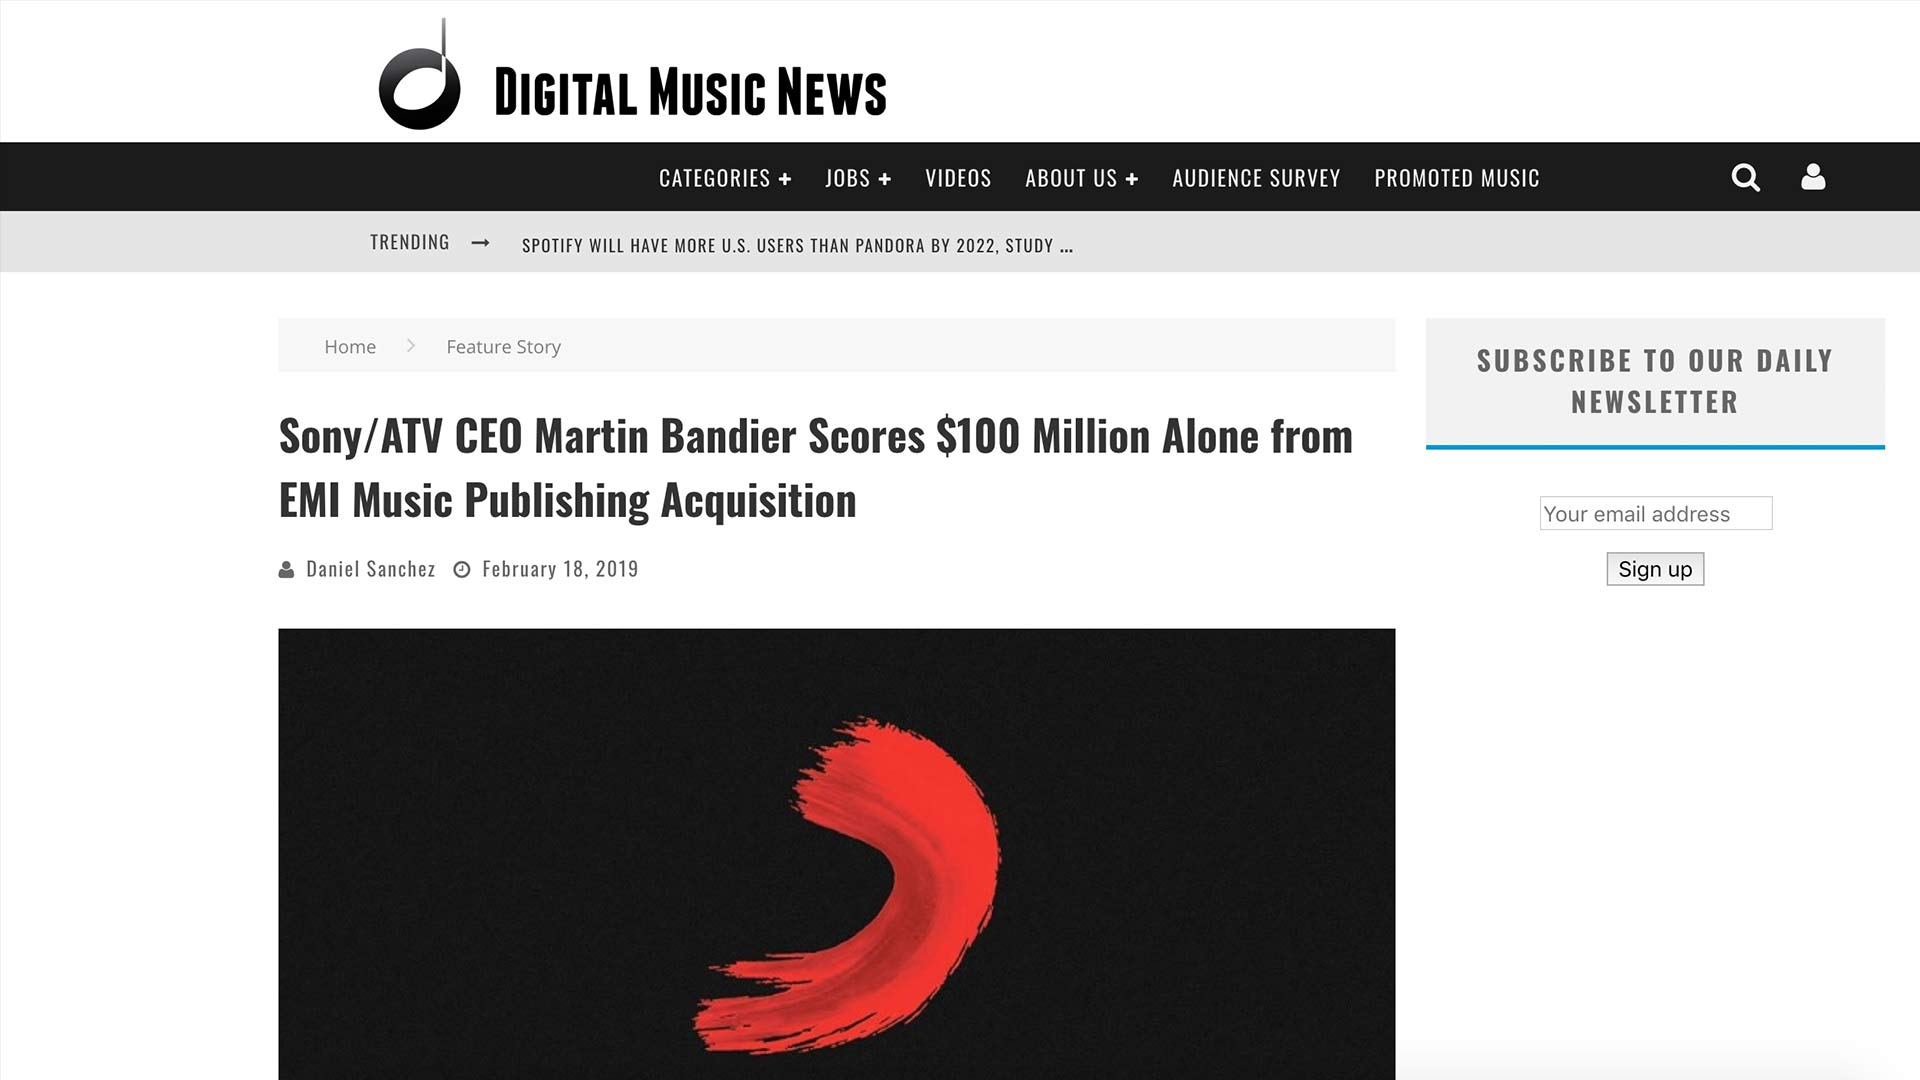 Fairness Rocks News Sony/ATV CEO Martin Bandier Scores $100 Million Alone from EMI Music Publishing Acquisition